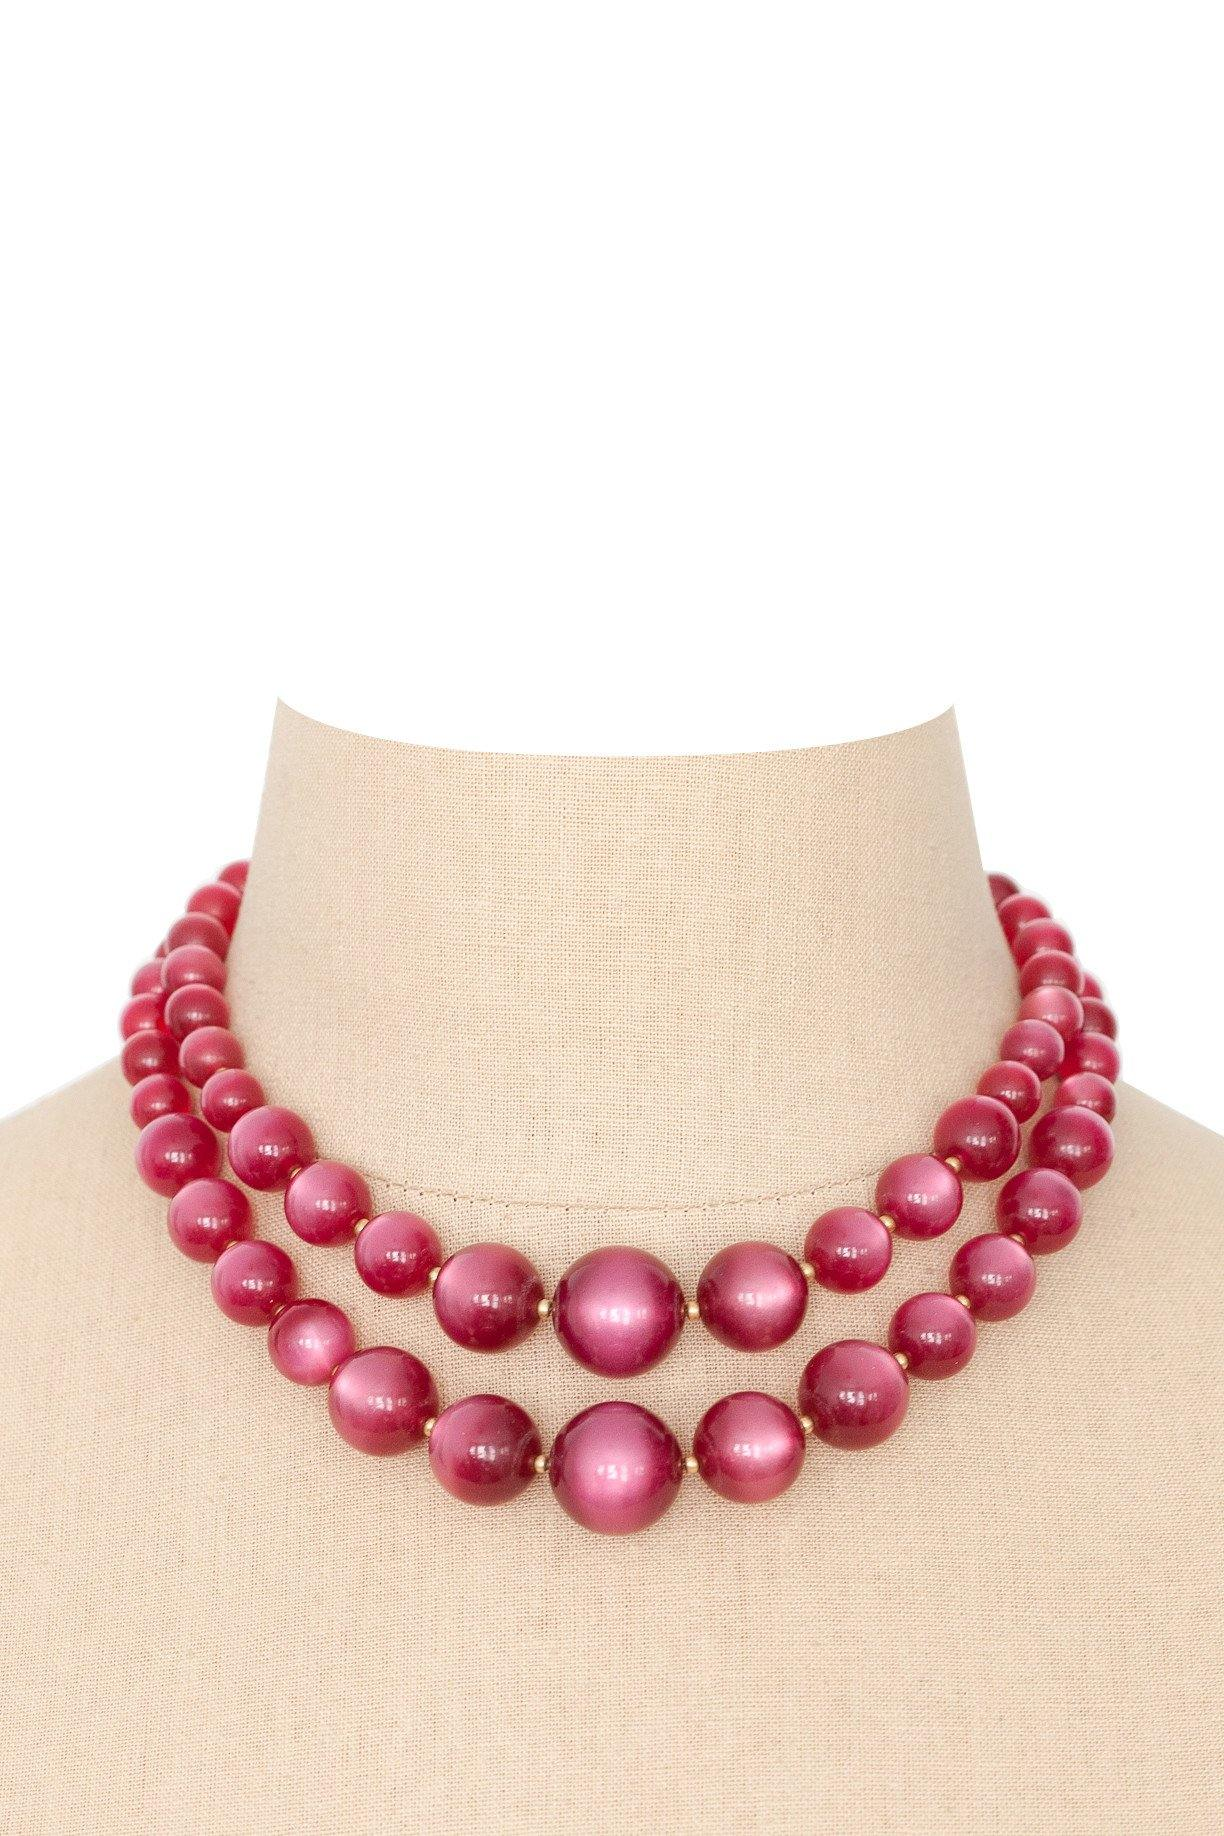 50's__Vintage__Cherry Bauble Necklace